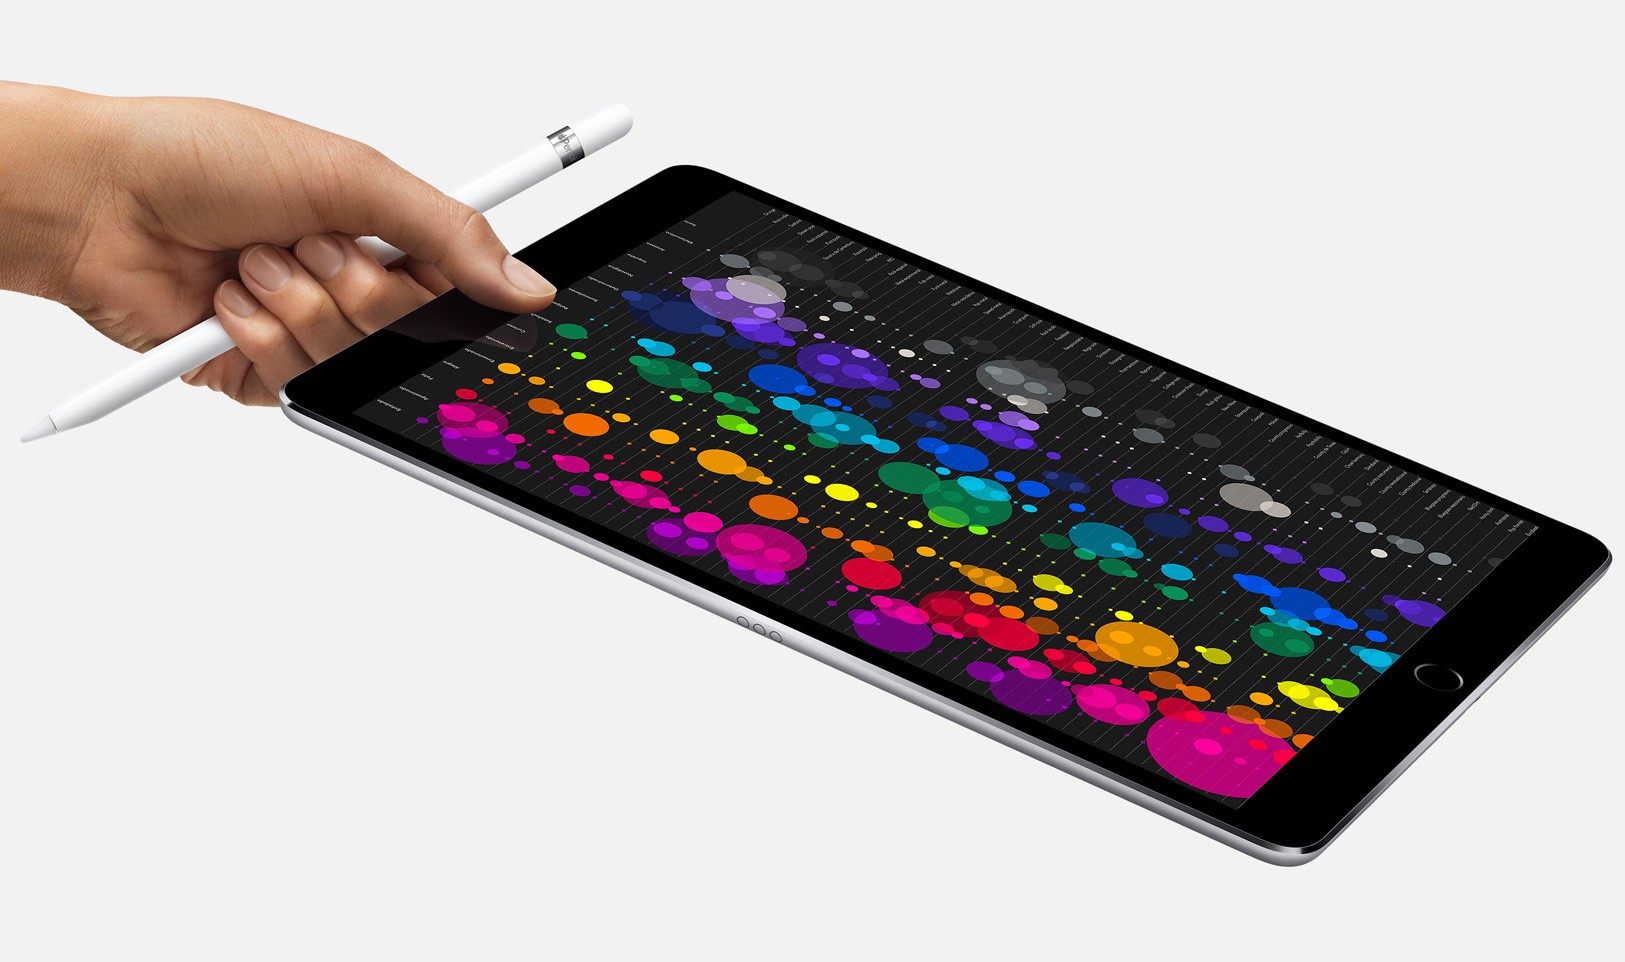 iPad Pro de 10,5 pulgadas con el Apple Pencil